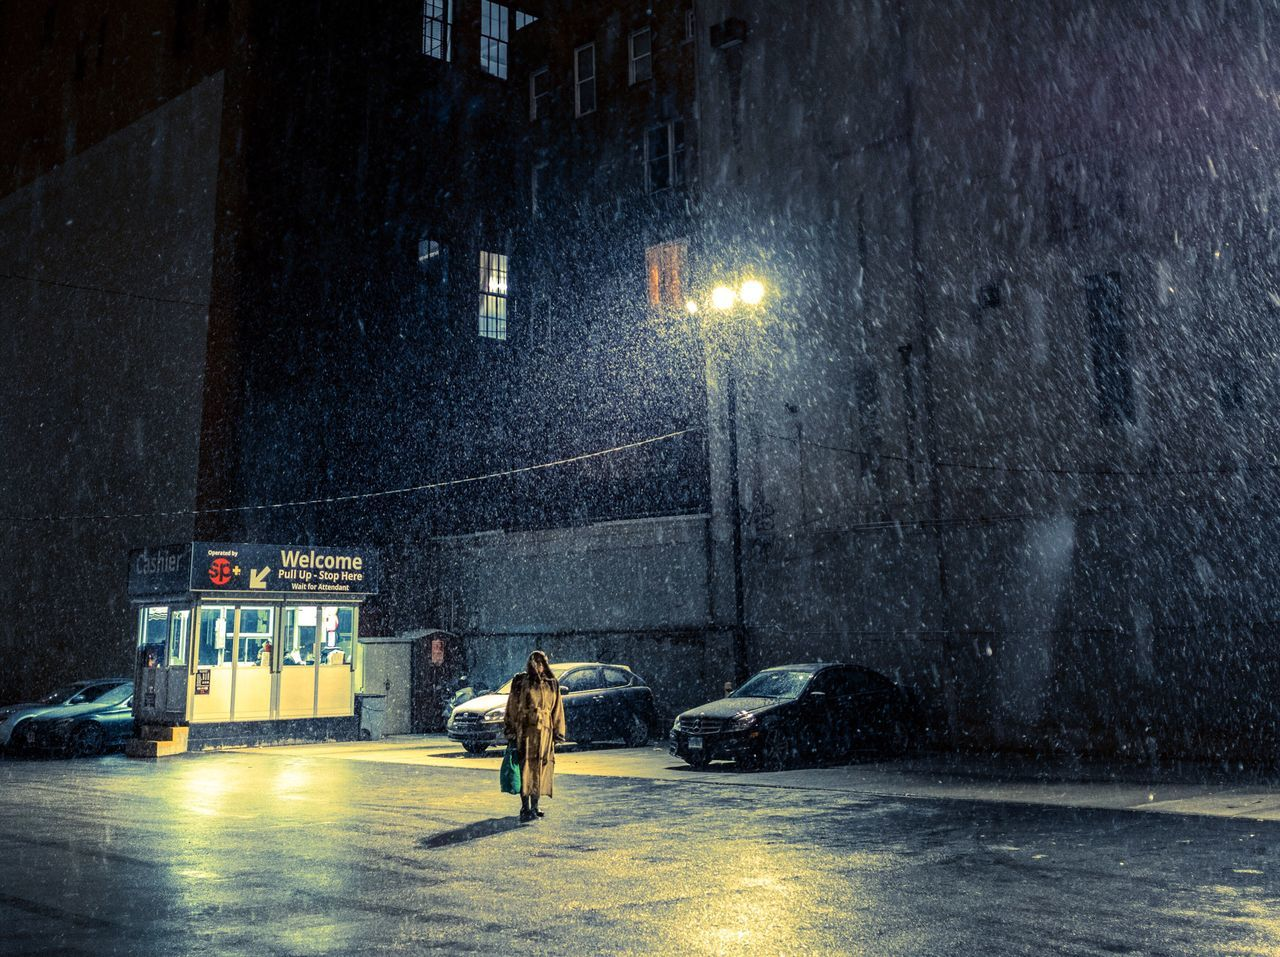 A brief romance under the snow nnightCCityssnowNNYCsstreetphotographyRRomance